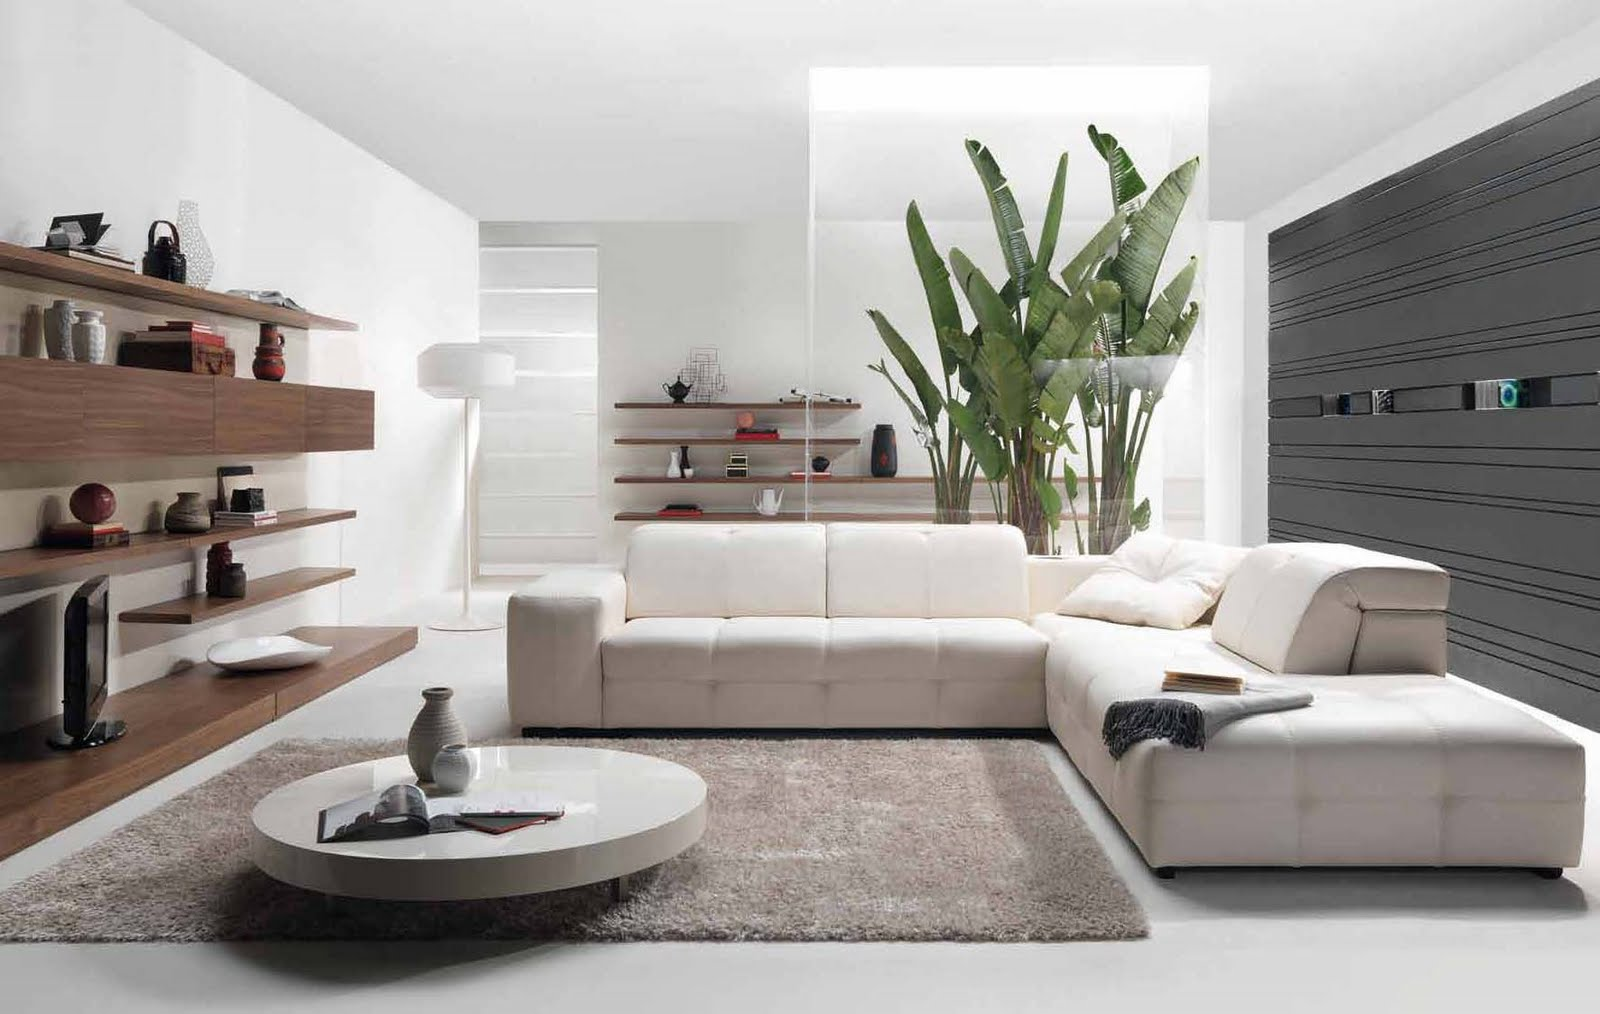 Modern home interior furniture designs diy ideas living room ideas Home furniture design living room